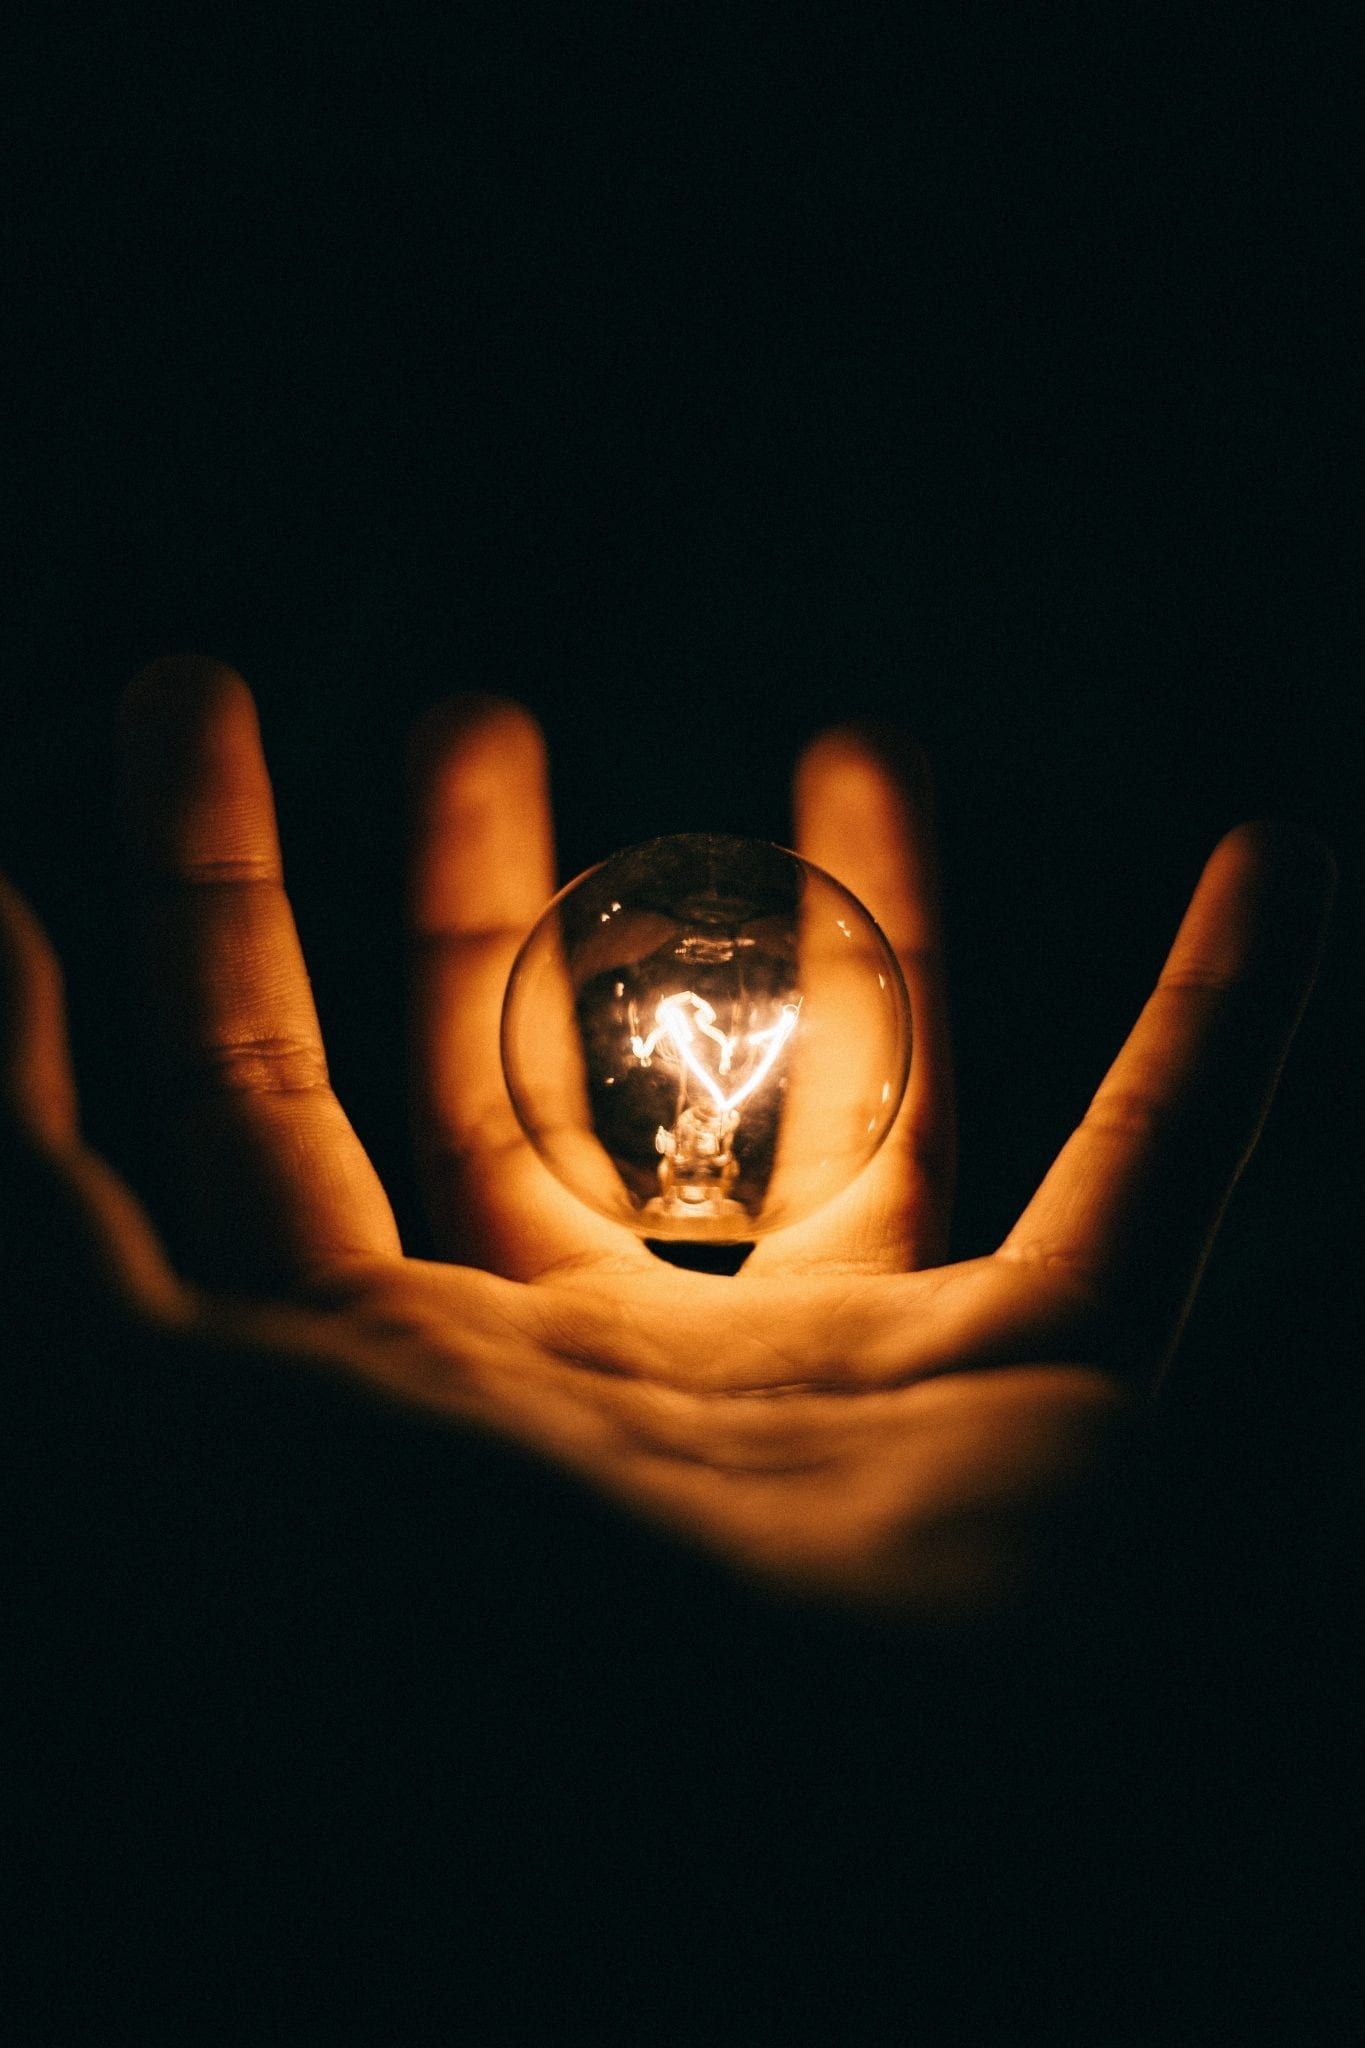 Hand with lightbulb floating above the palm against a dark background; image by Rohan Makhecha, via Unsplash.com.